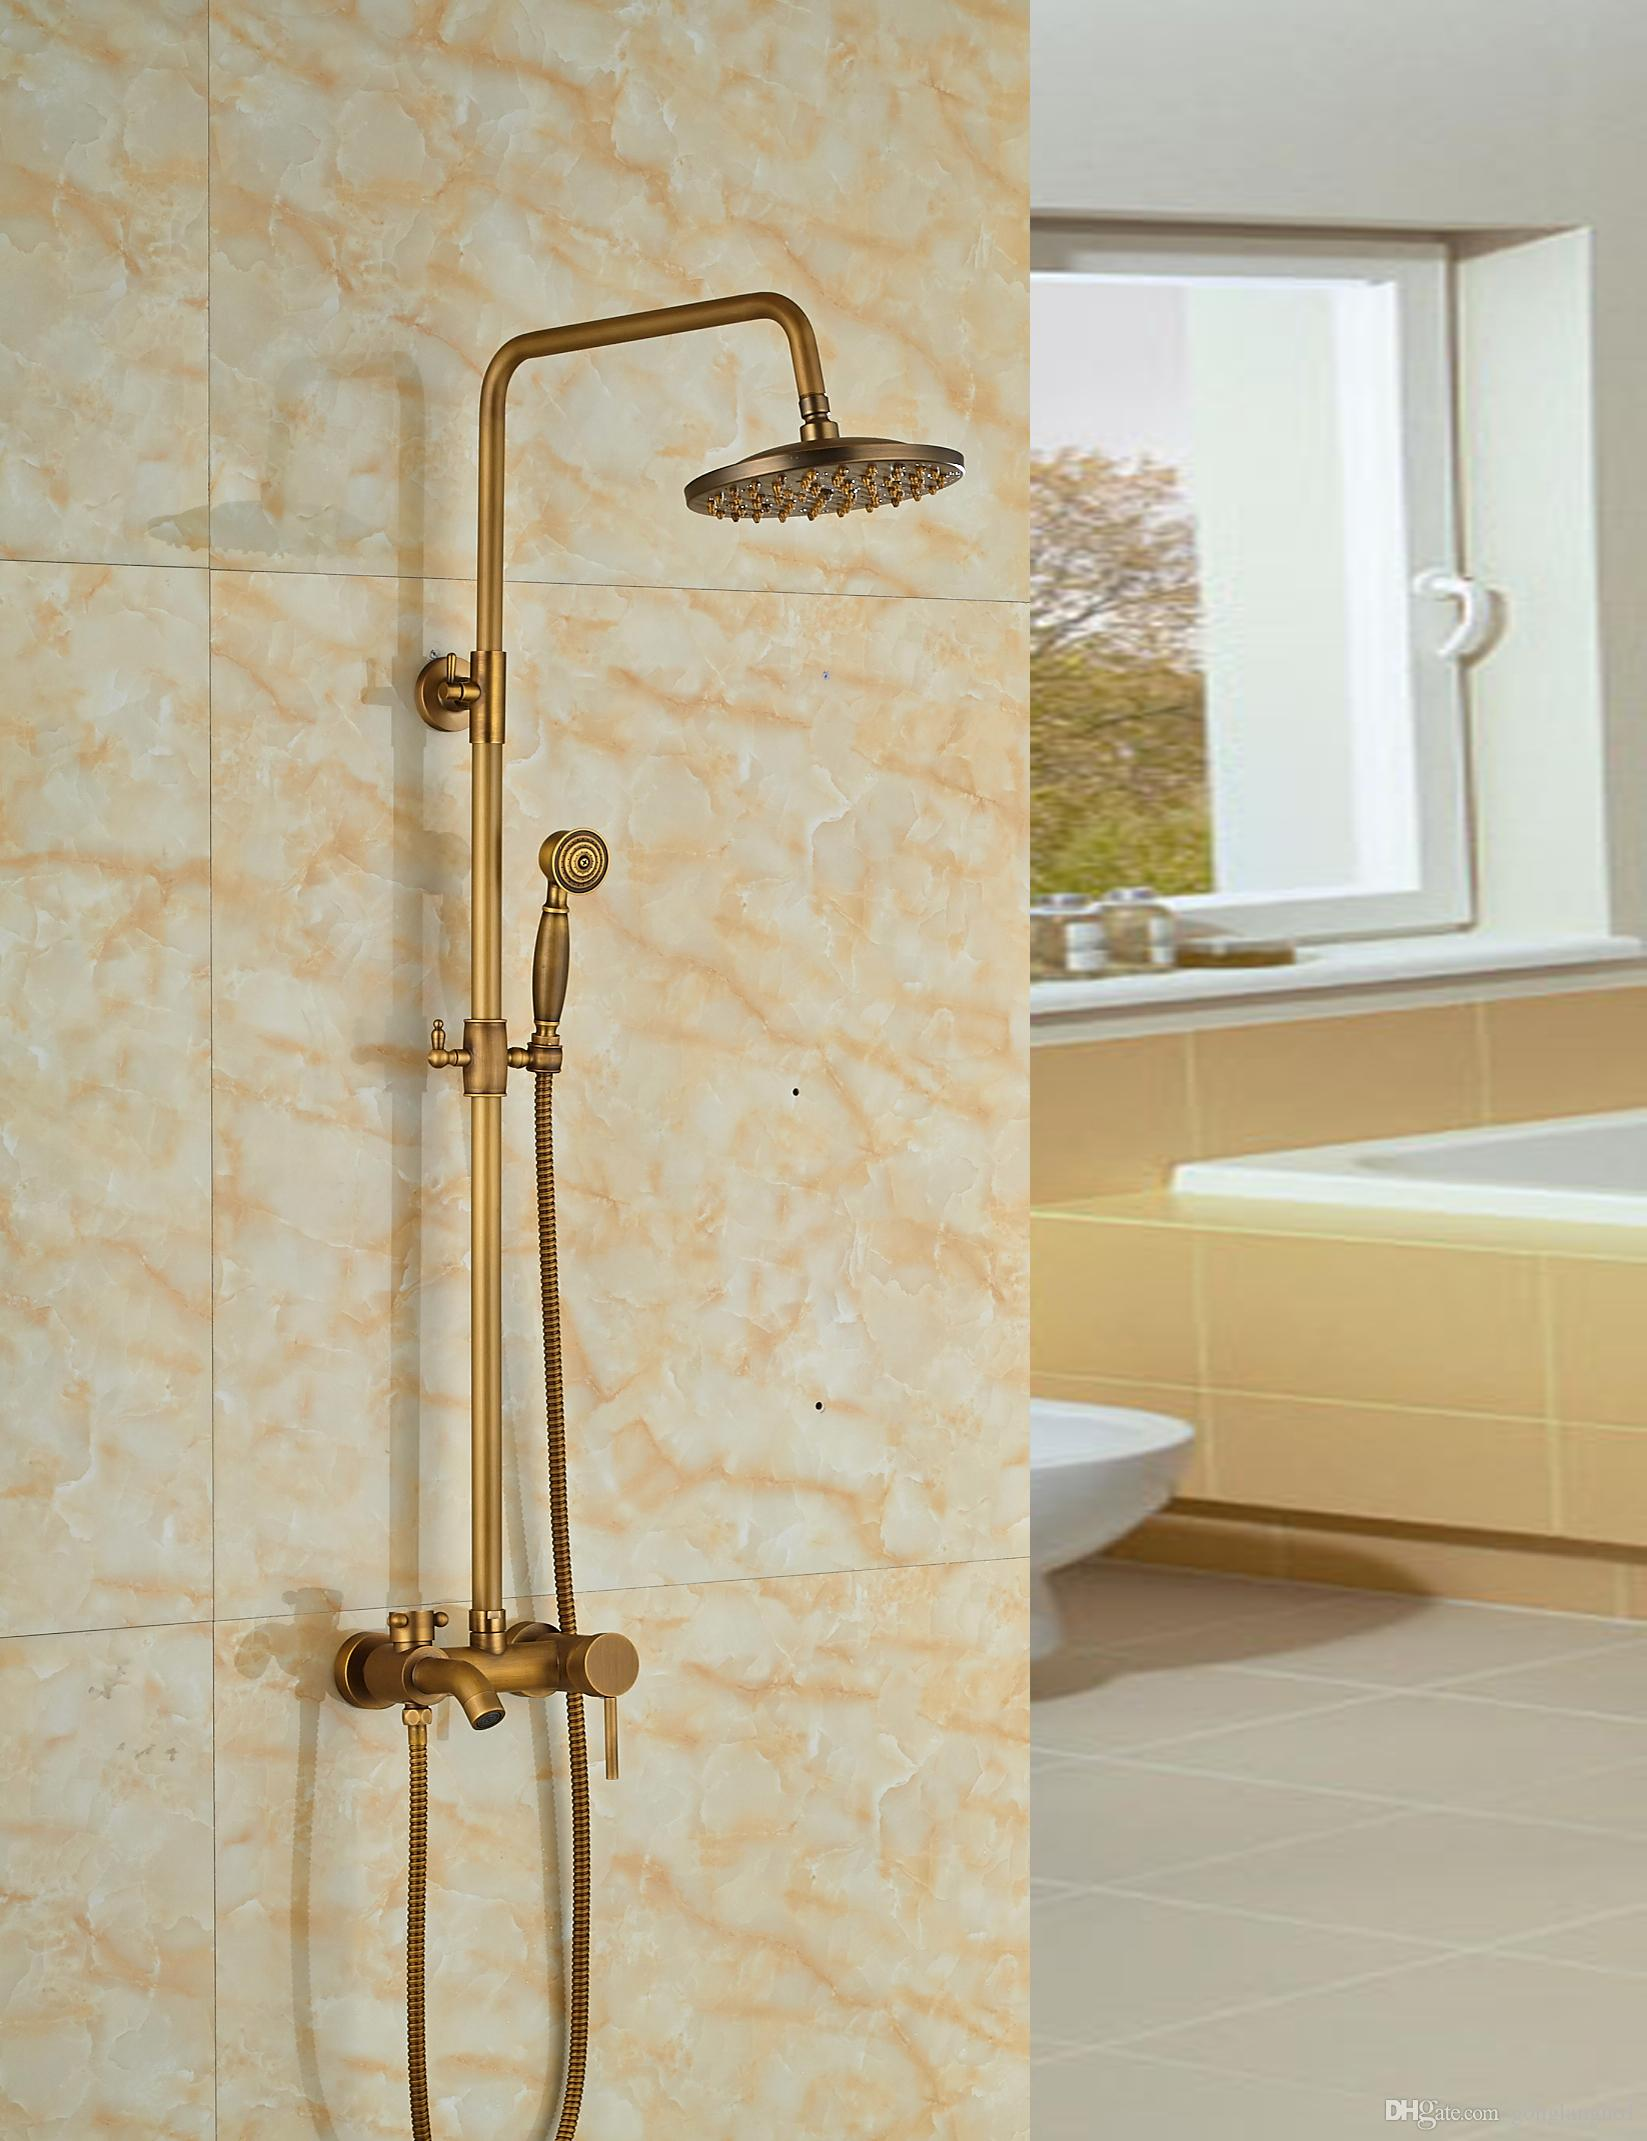 2019 Wholesale And Retail Antique Brass Tub Spout Valve 8 Round Rain Shower Faucet W Hand Held Shower Mixer Tap Wall Mounted From Gonglangno1